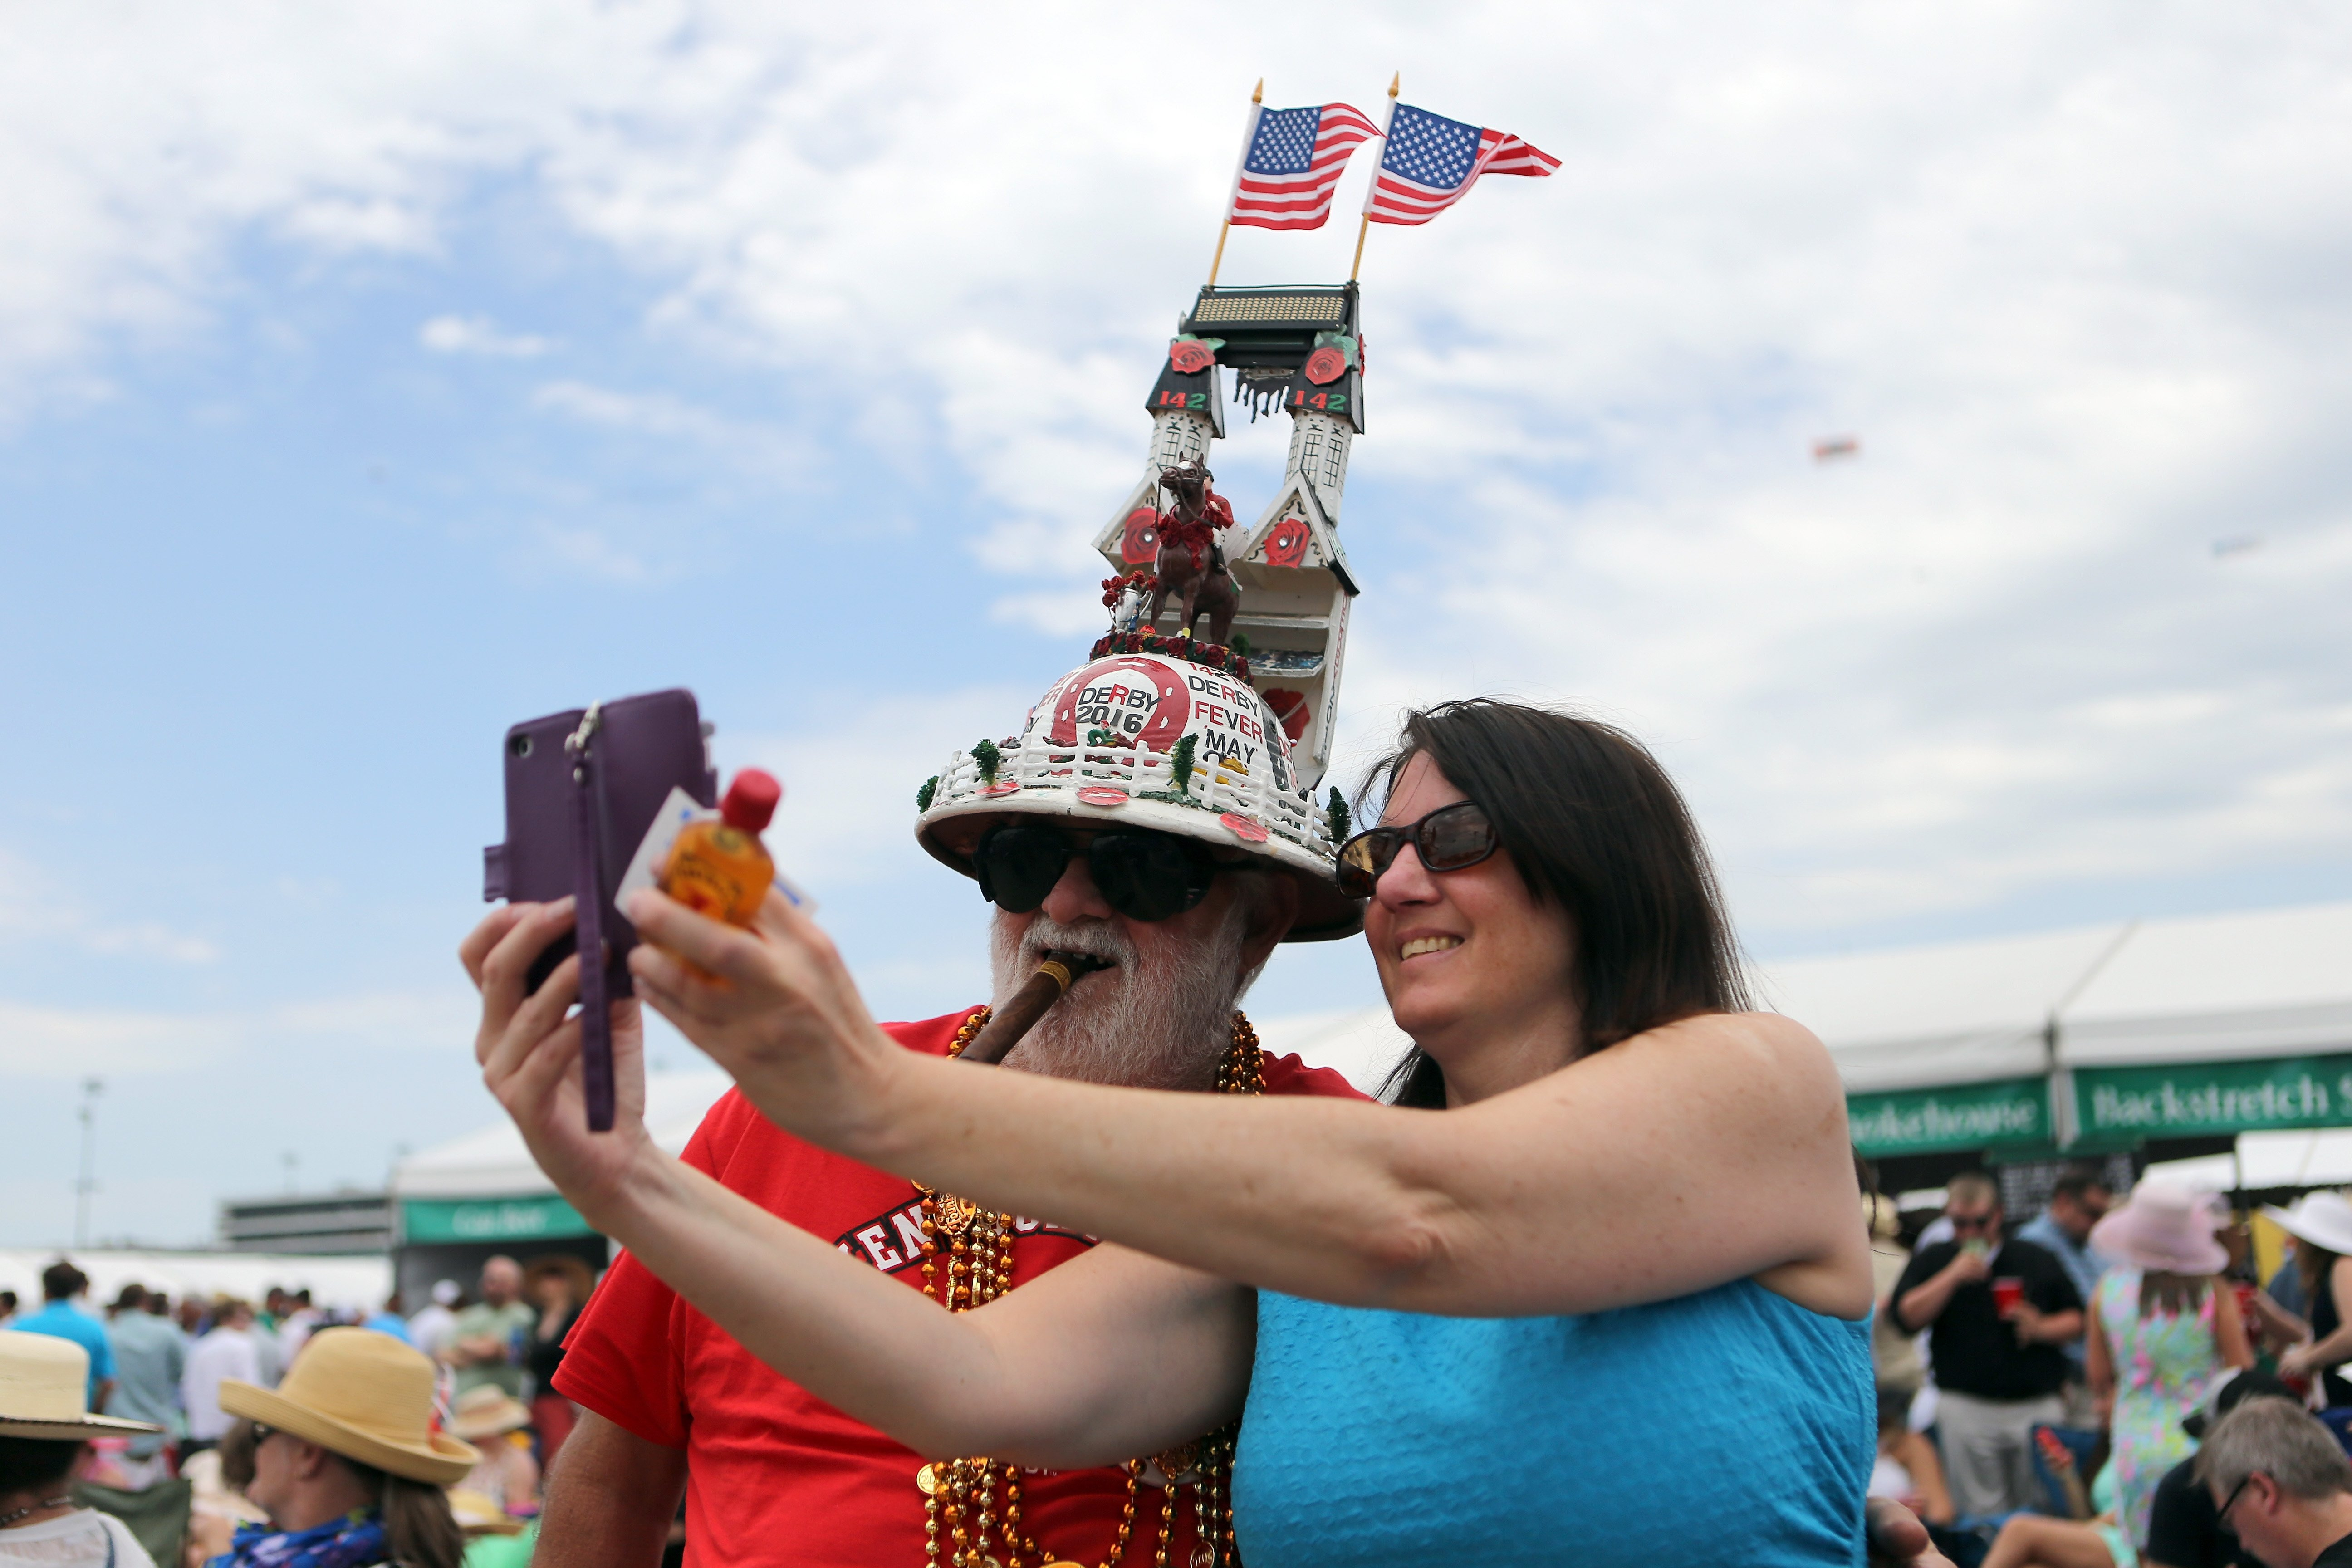 The 142nd running of the Kentucky Oaks horse race at Churchill Downs on May 7, 2016, in Louisville, Ky.